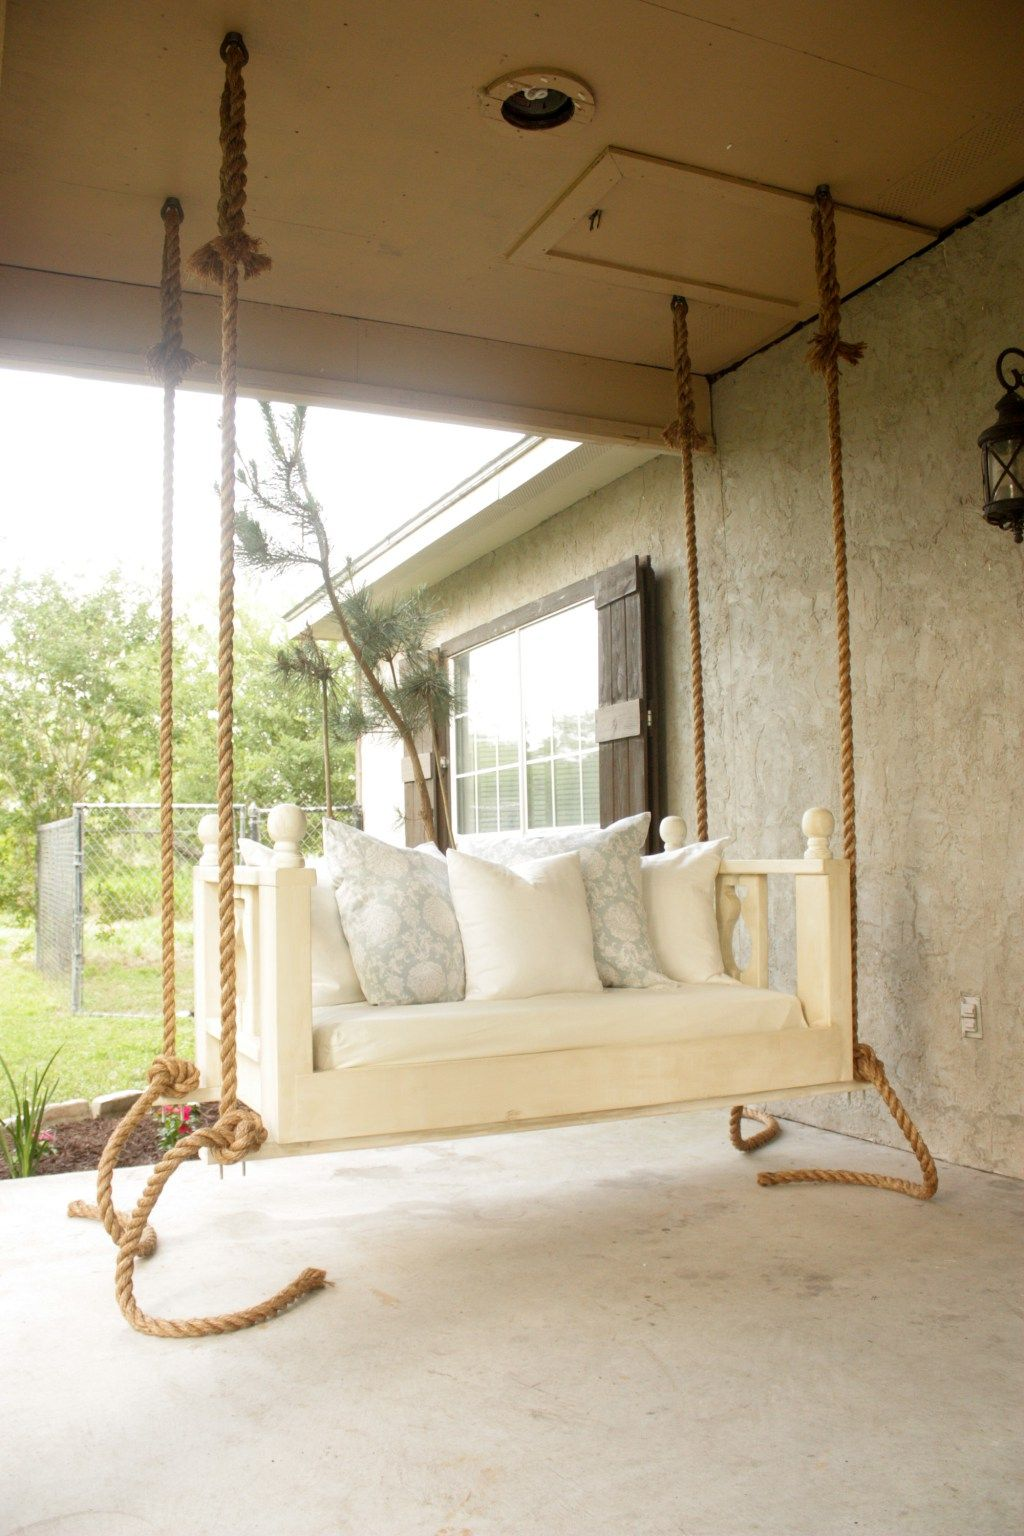 Diy Porch Bed Swing Free Plans Just In Time For Summer Swinging